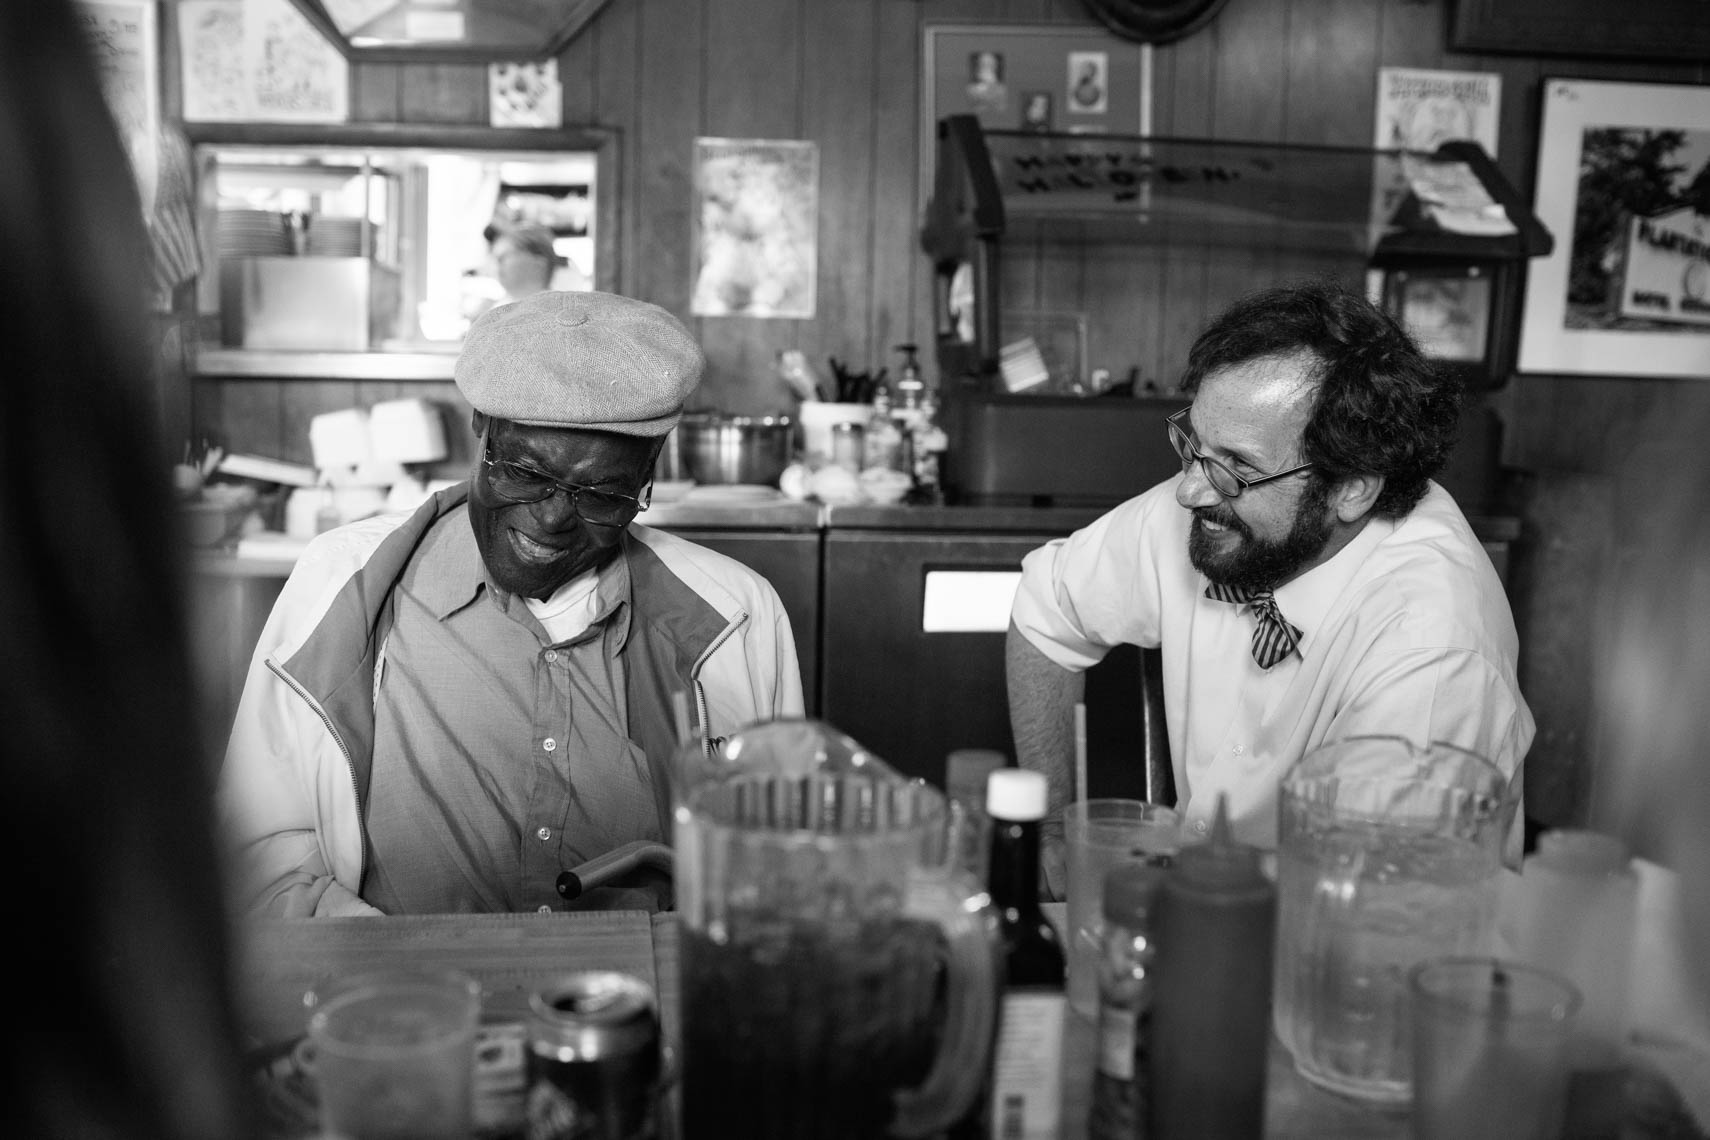 George & Charles at lunch, laughing.